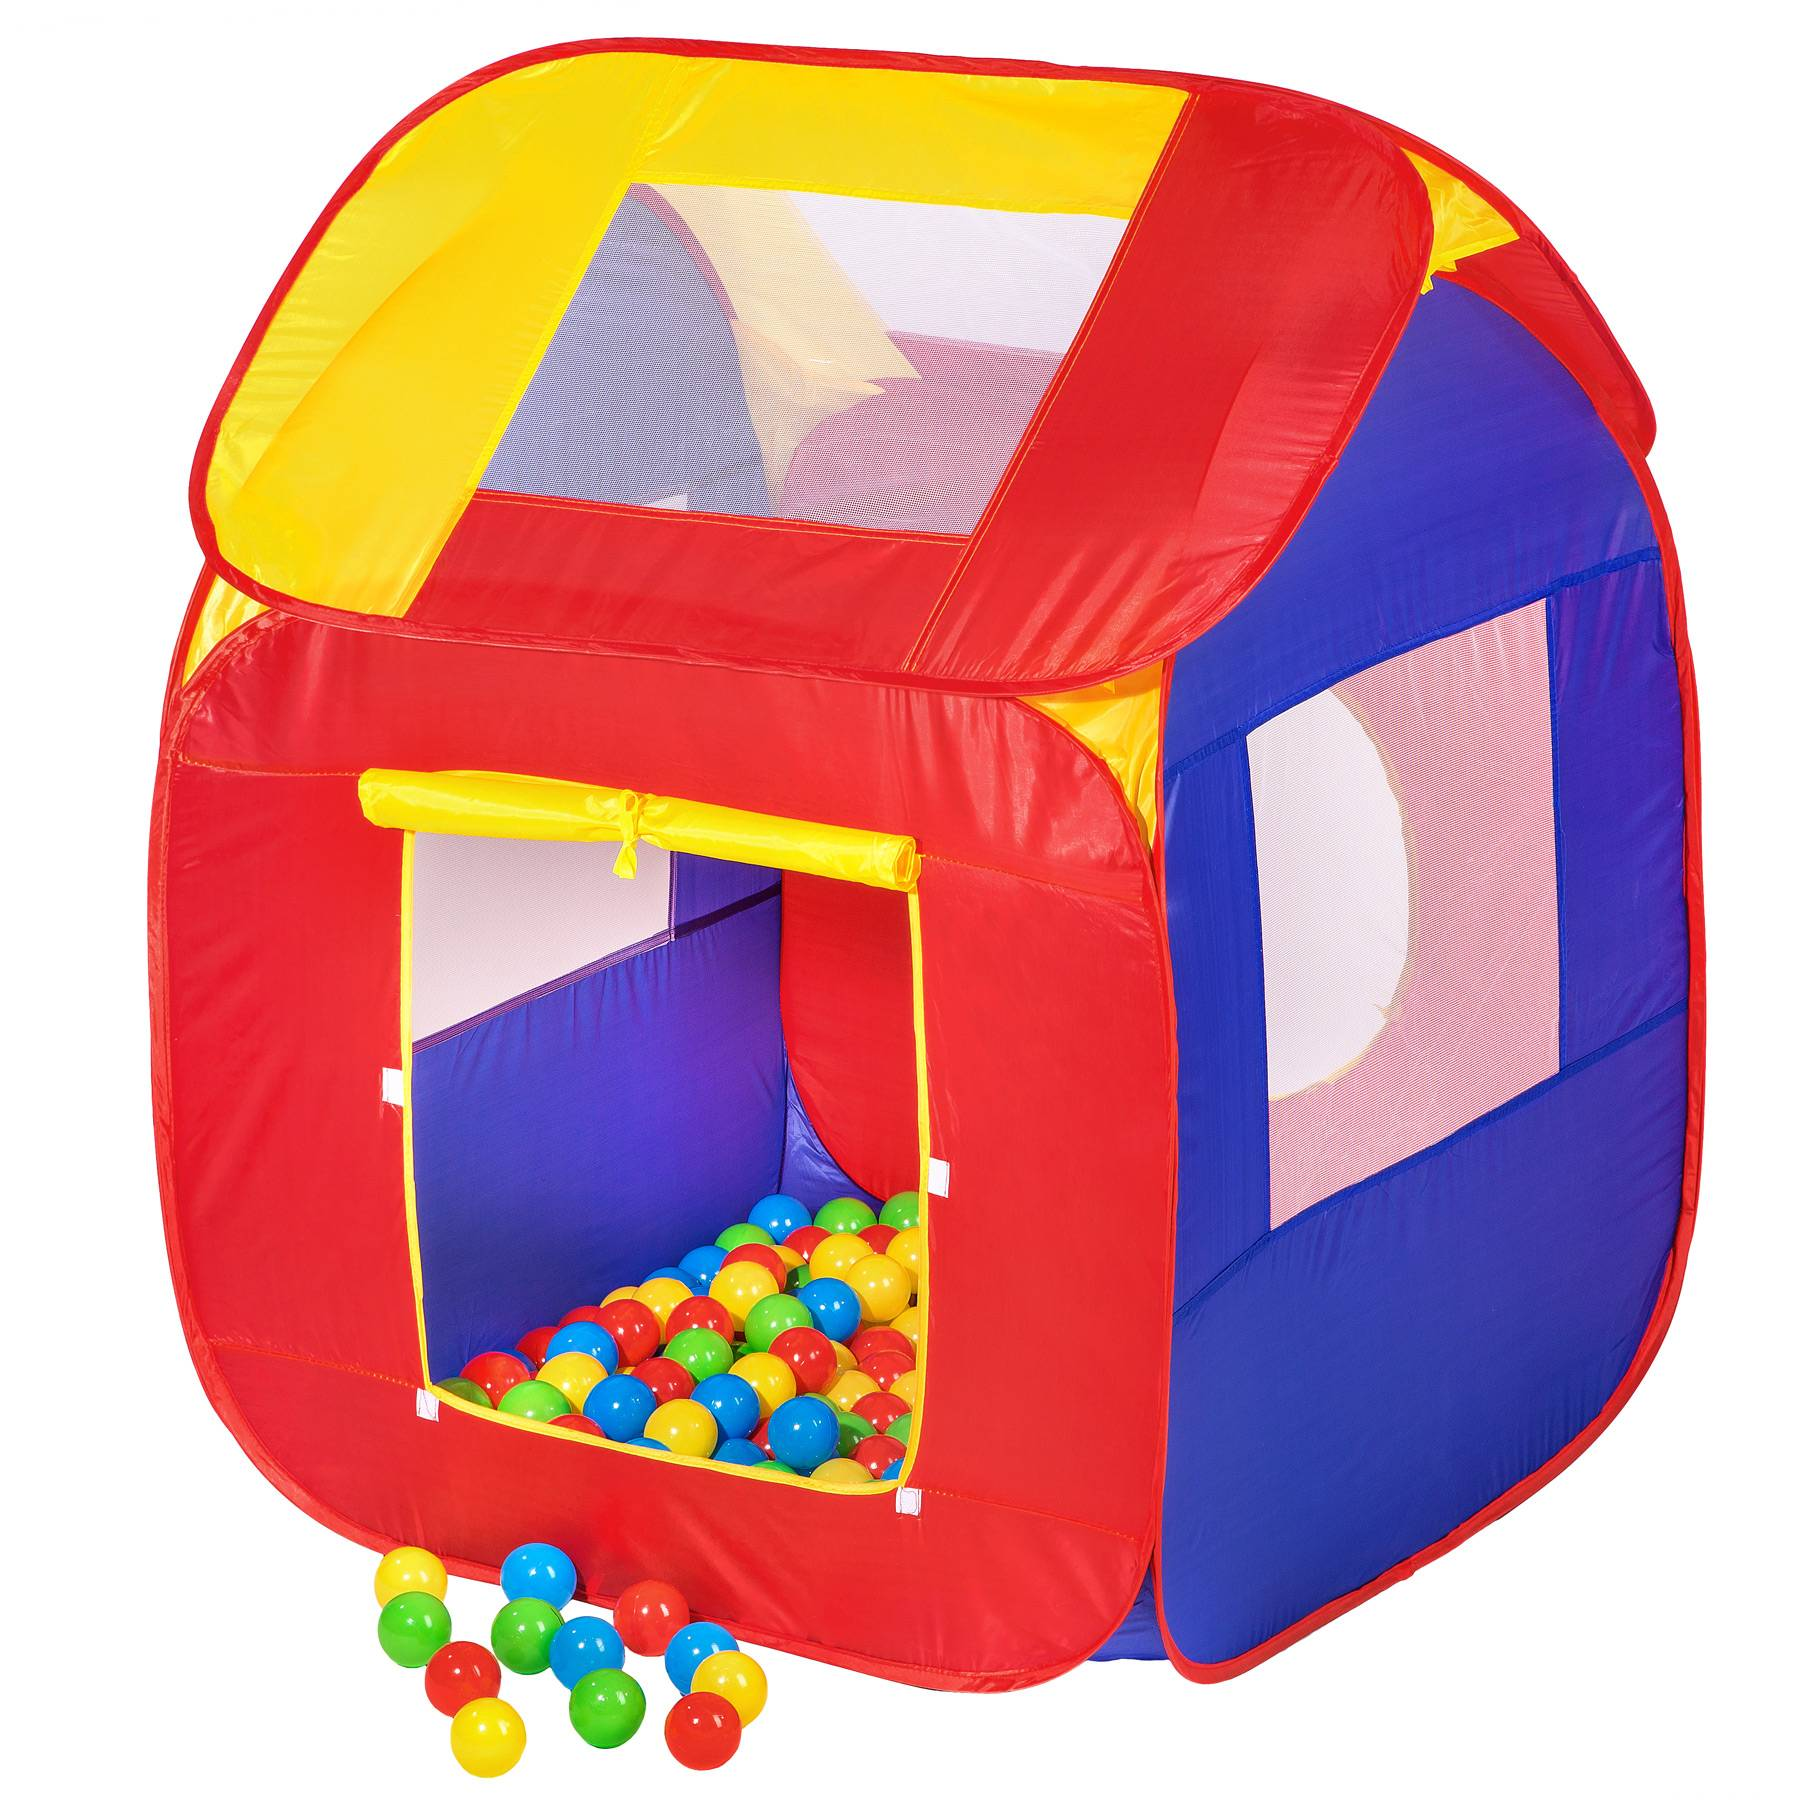 tectake Play tent with 200 balls pop up tent - colorful